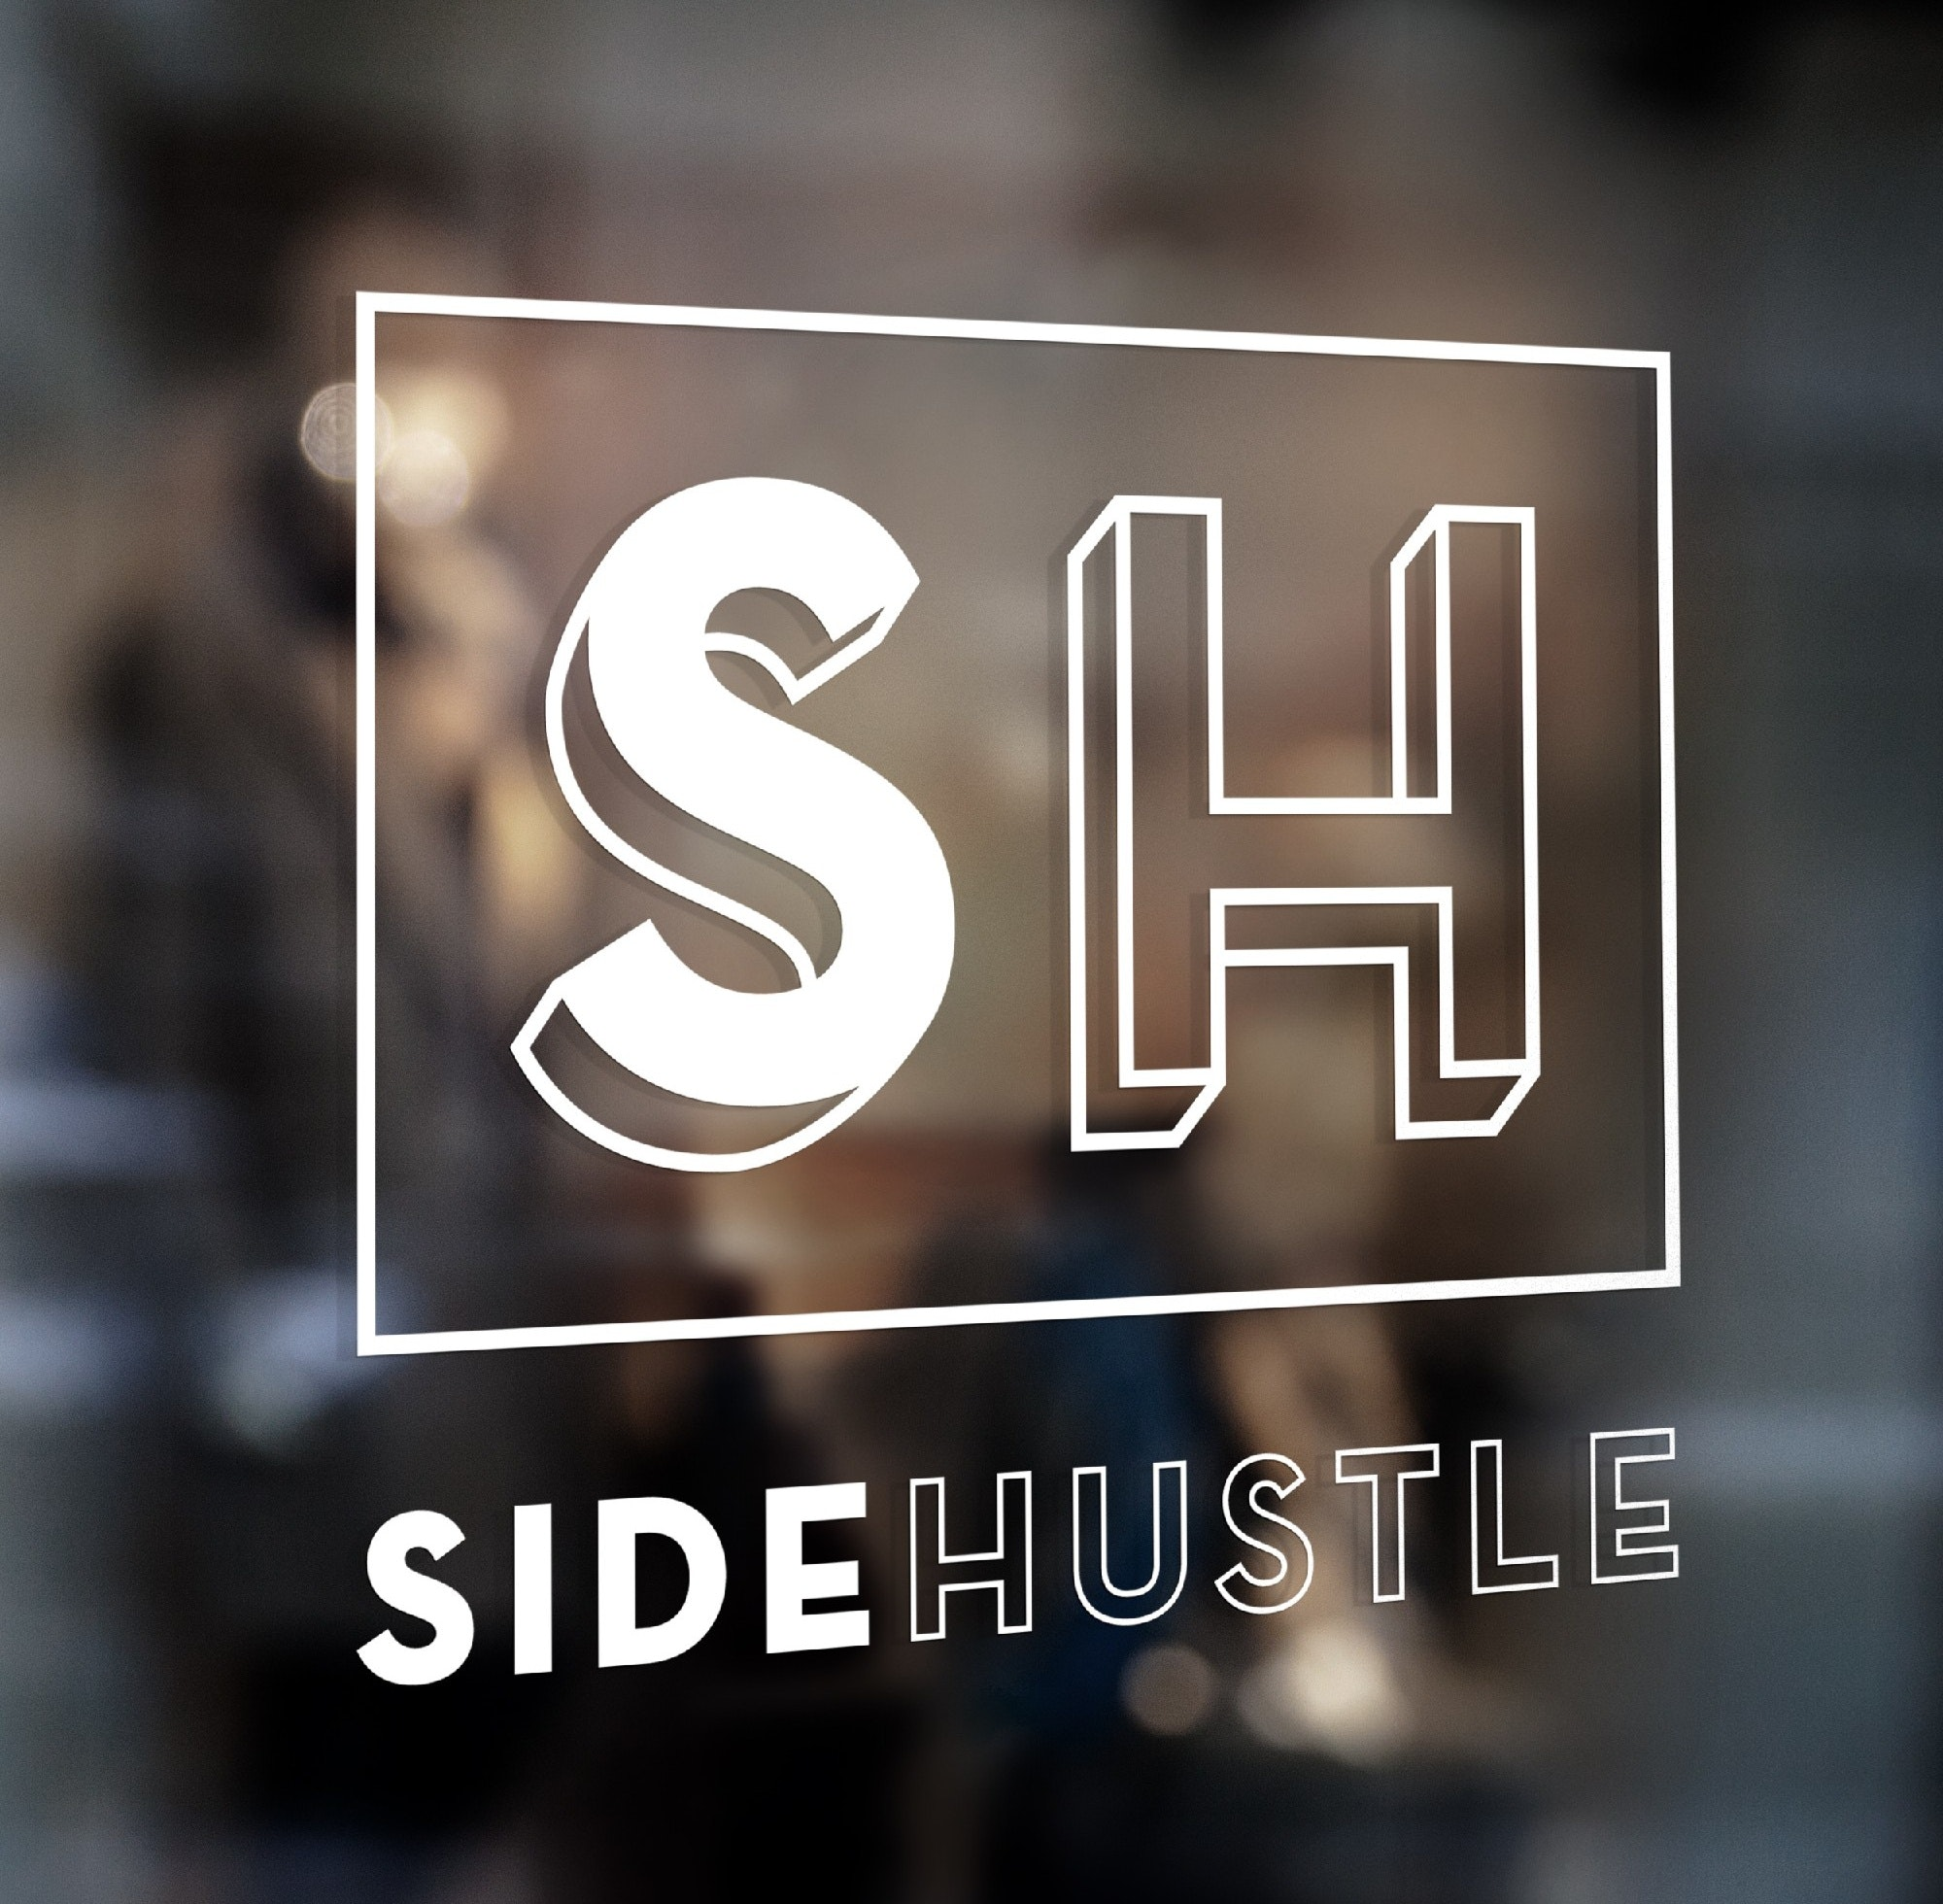 side hustle logo